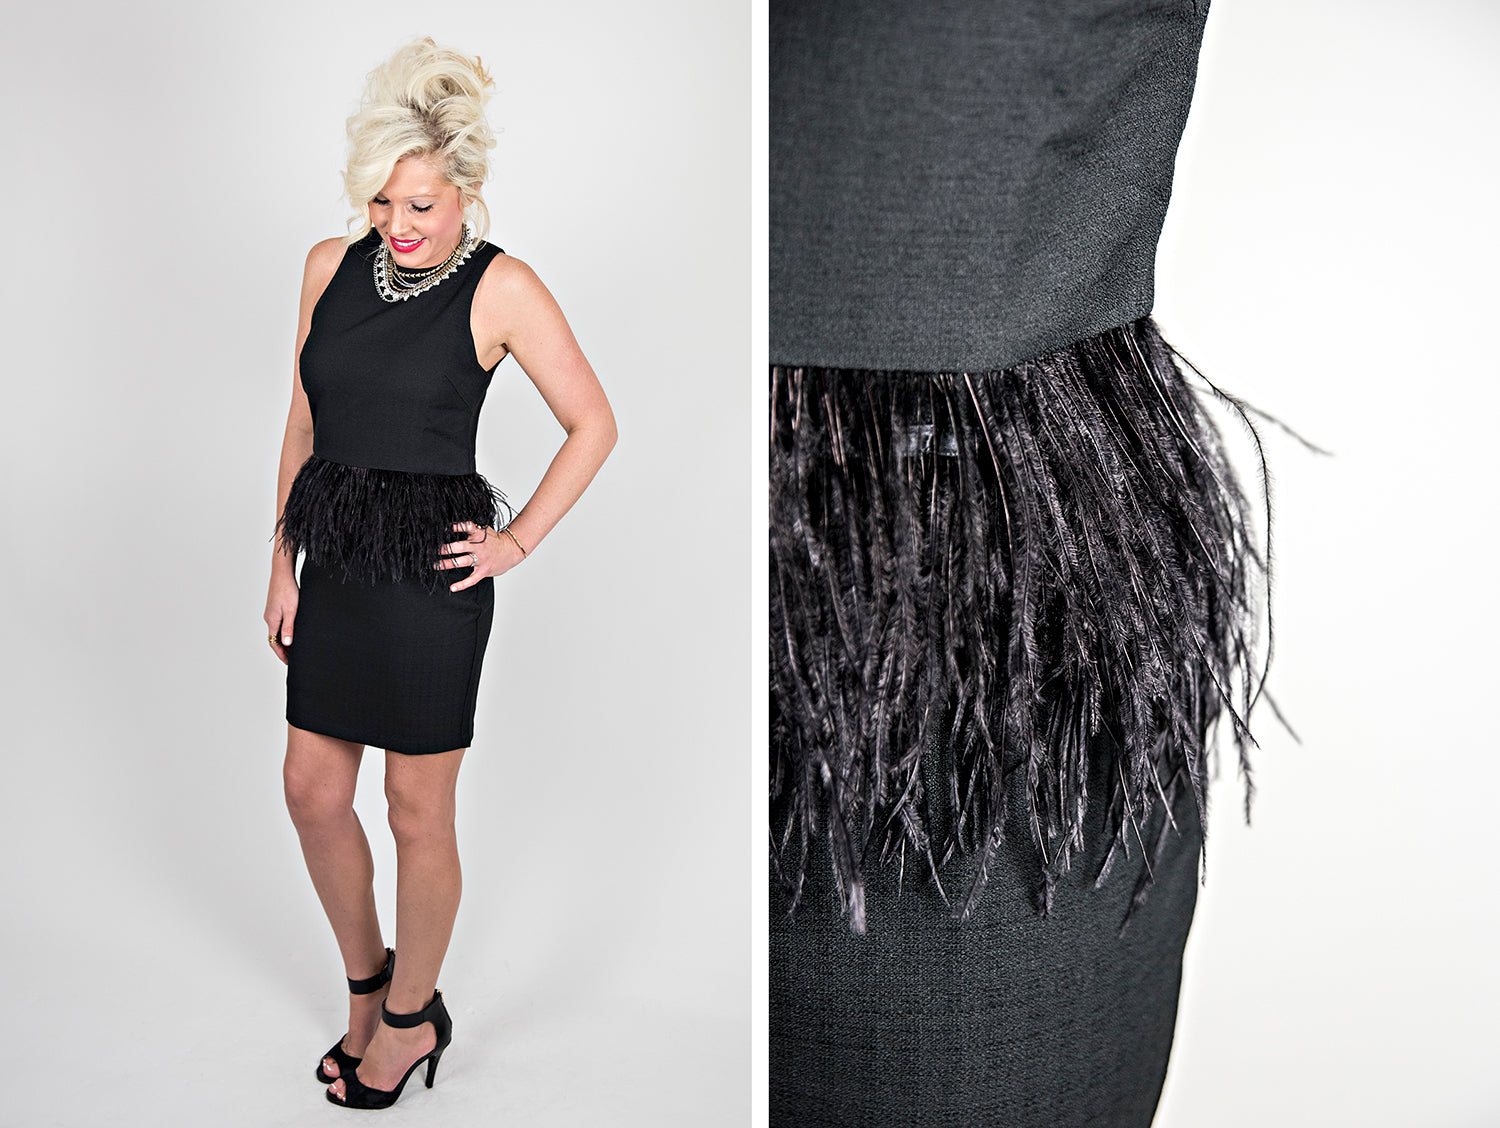 Black peplum dress with feathers.